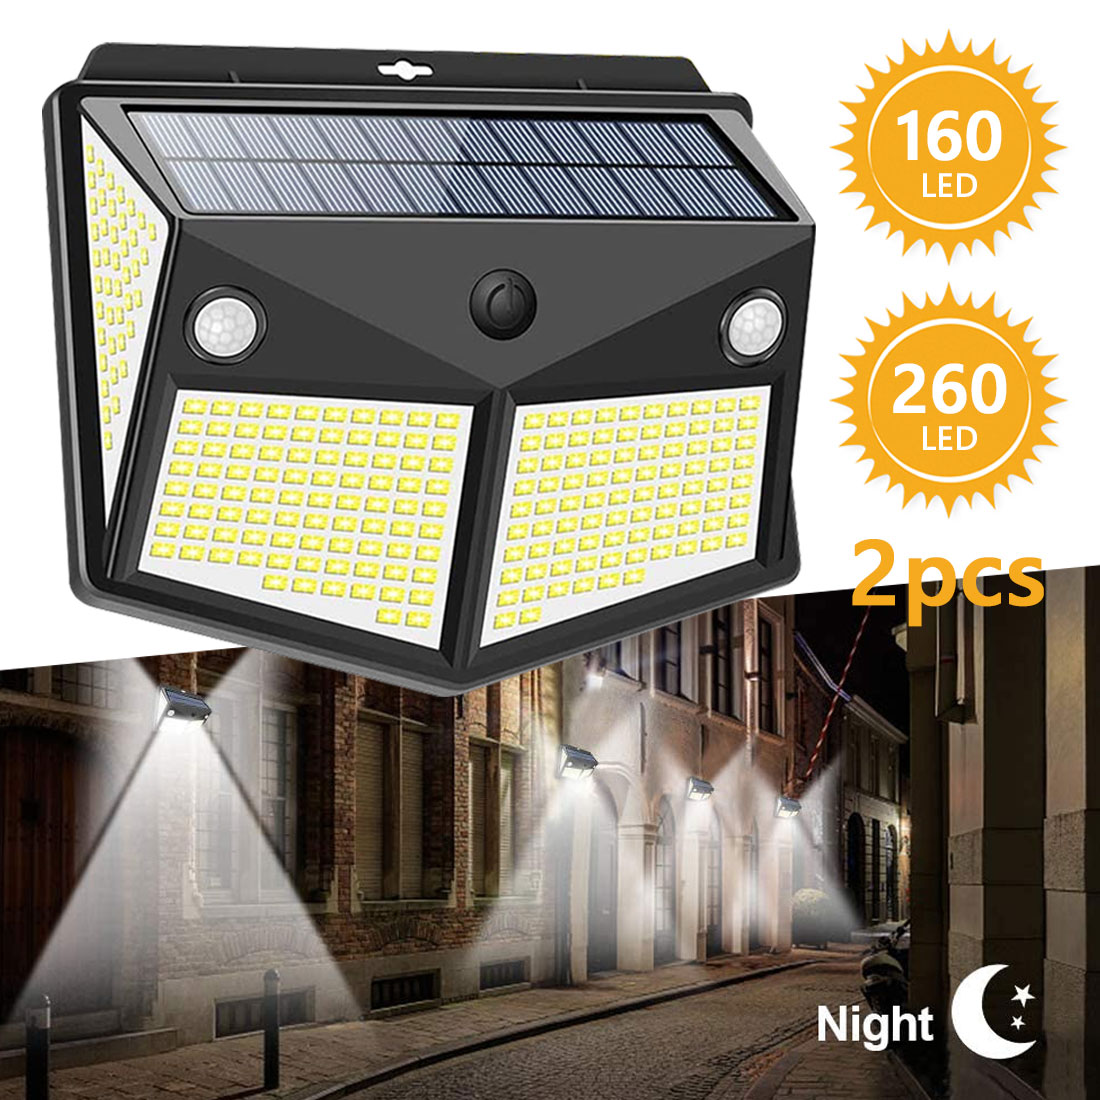 260 LED Solar Light Outdoor Powered Sunlight Lamp Waterproof PIR Motion Sensor Street Spotlight for Garden Decoration 3 Modes